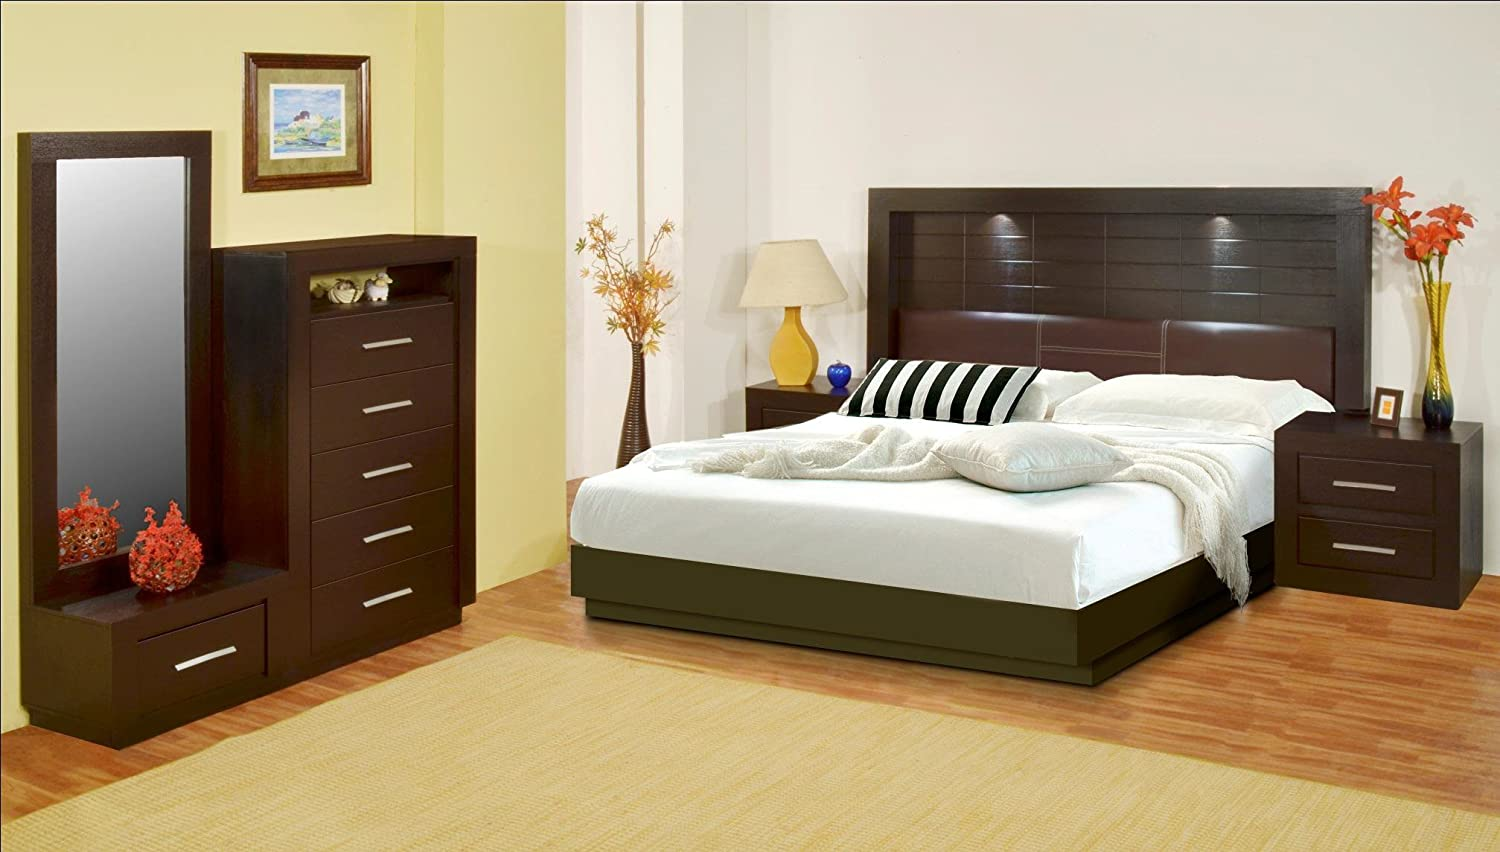 Recamara Modelo Maya King Size Chocolate Amazon Com Mx Hogar Y  # Muebles Medicos Maya